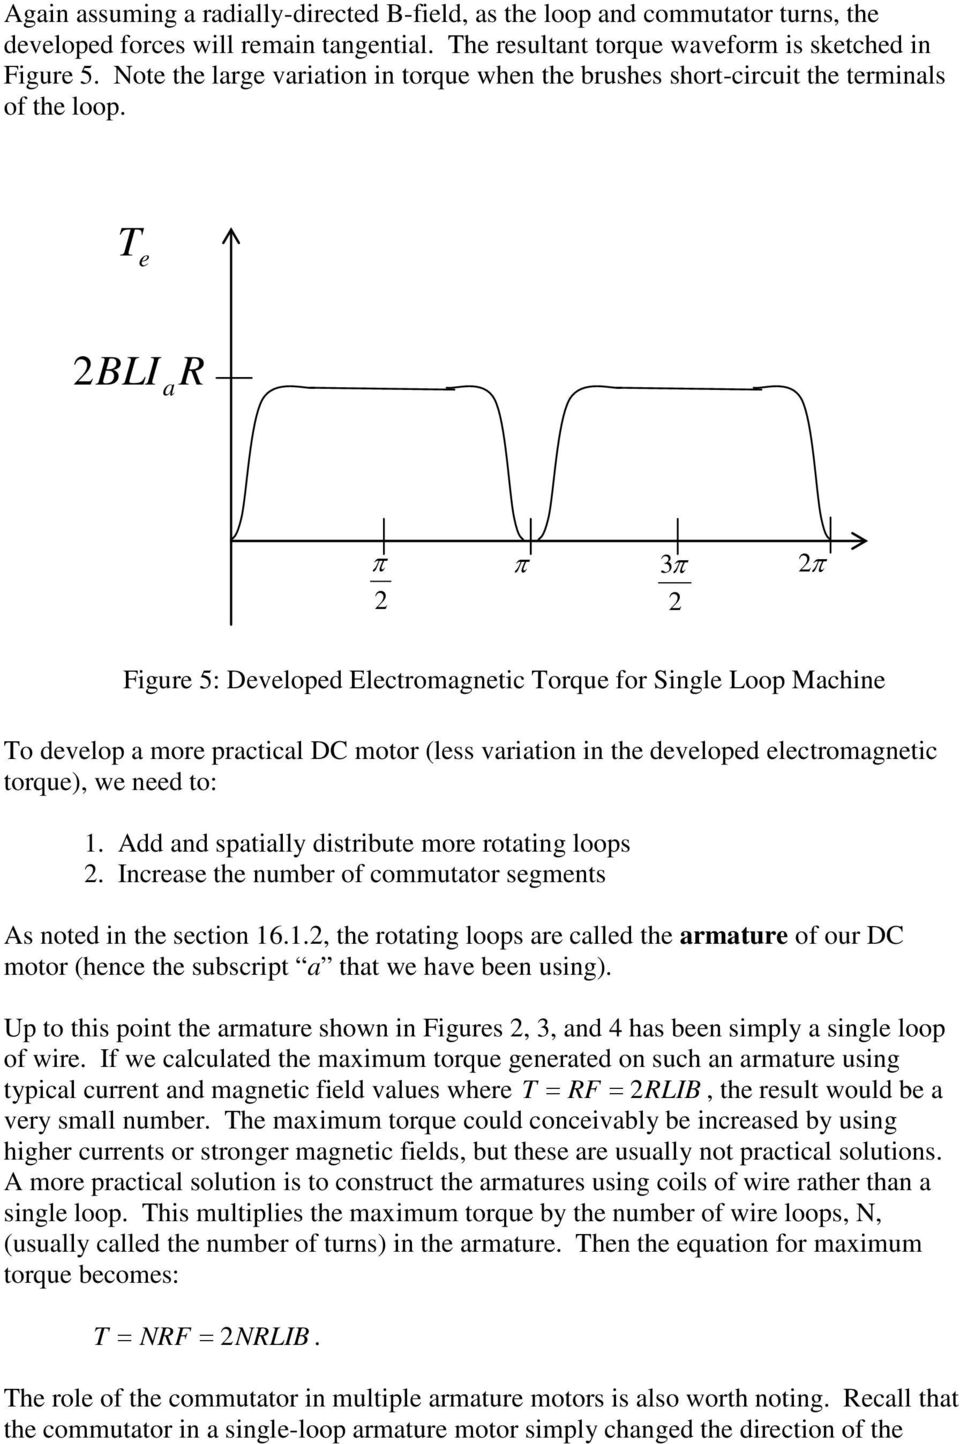 e 2BLI R π 2 π 3π 2 2π Figure 5: Developed Electromgnetic orque for ingle Loop Mchine o develop more prcticl DC motor (less vrition in the developed electromgnetic torque), we need to: 1.